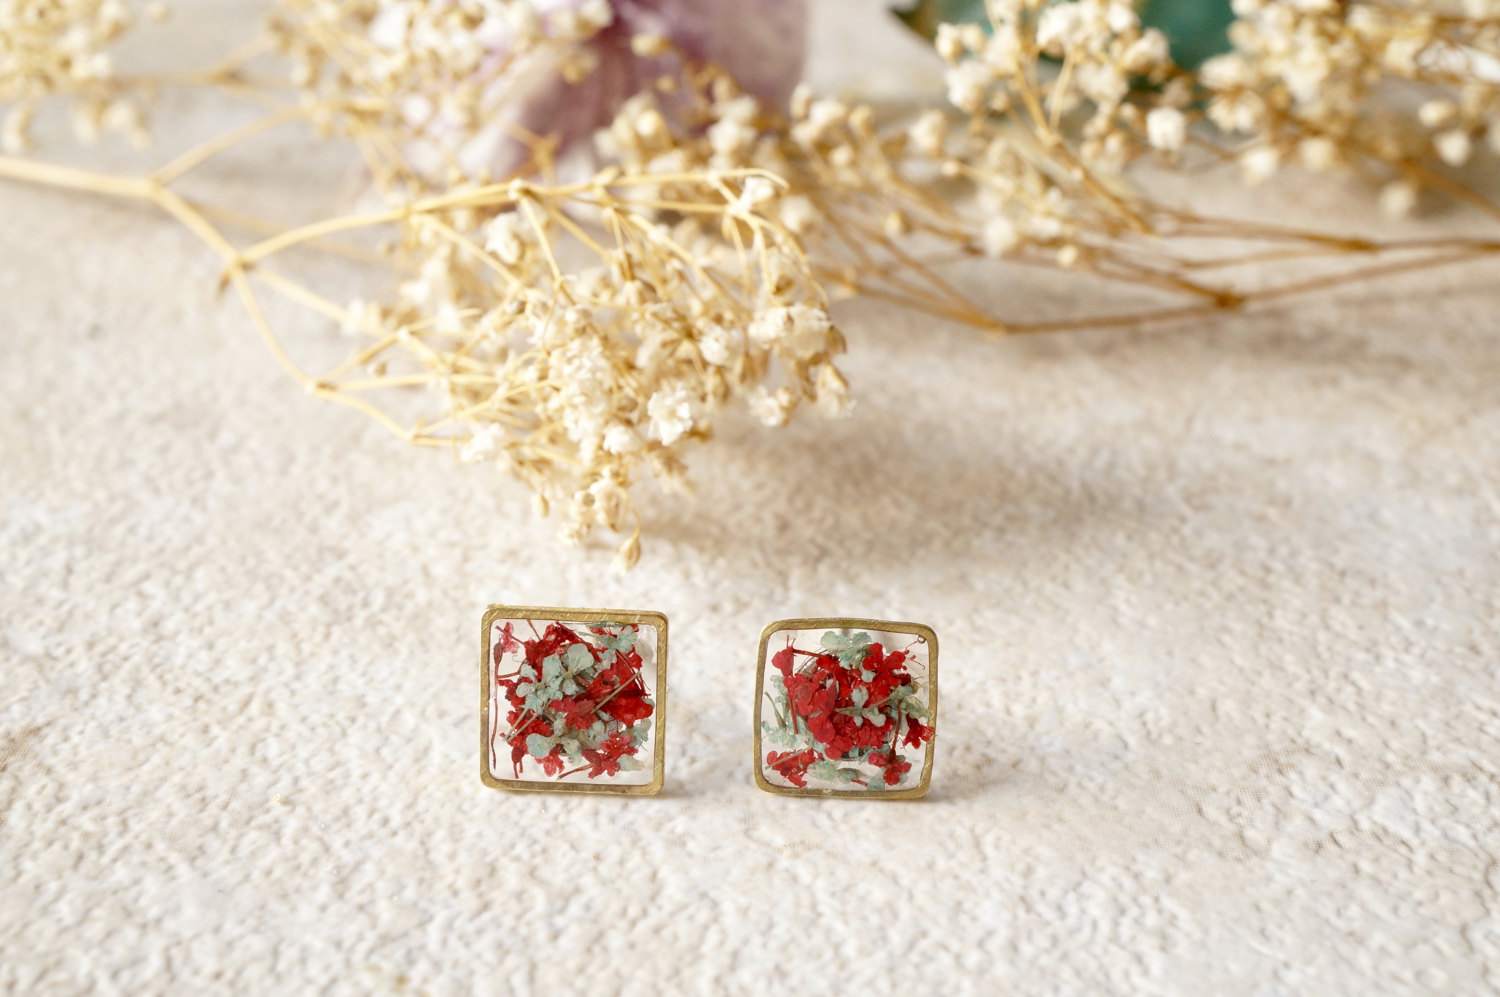 Real Dried Flowers and Resin Square Stud Earrings in Red and Mint from Ann  + Joy